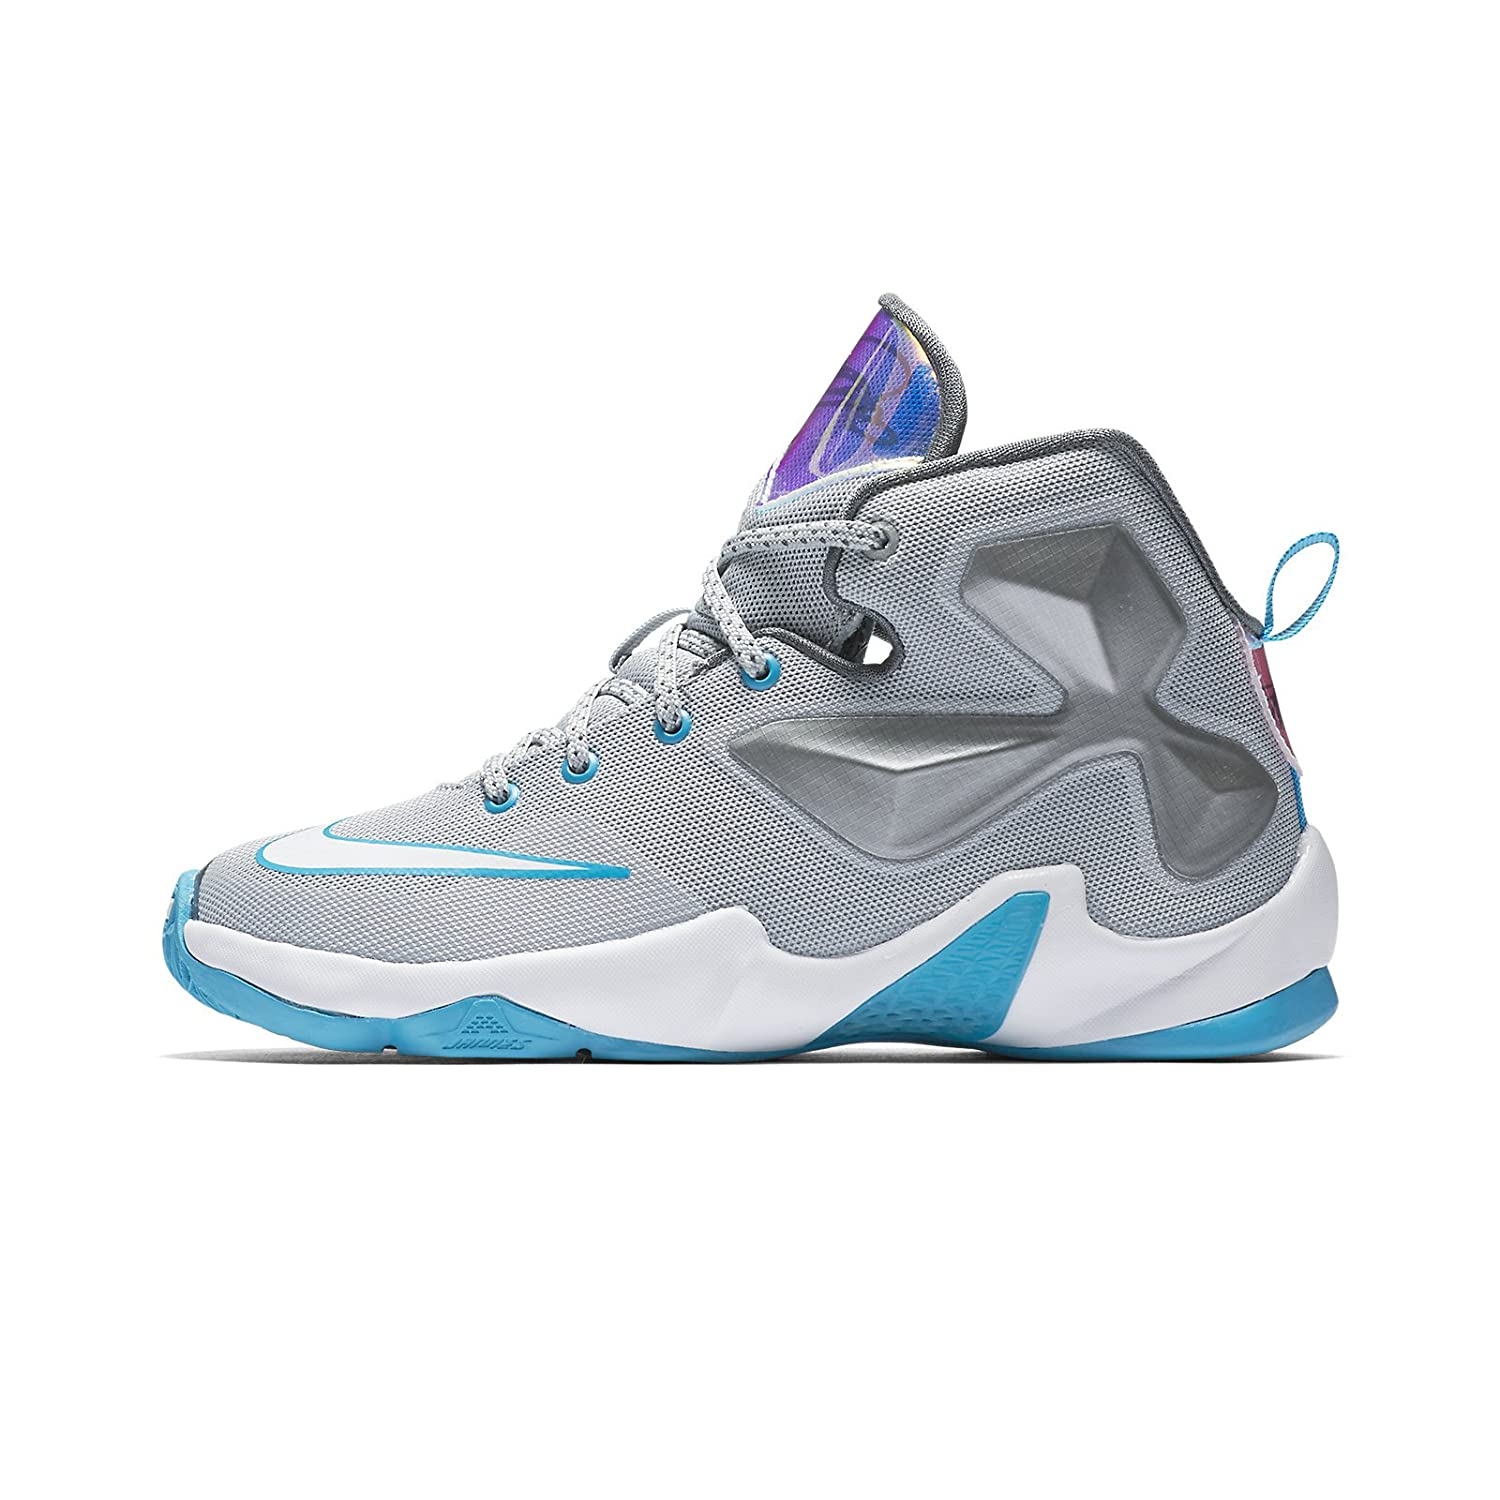 info for 5d96f 25219 Nike Lebron XIII 13 (PS) 808710-014 Wolf Grey White Blue Lagoon Little Kids  Shoes (Size 1.5Y)  Amazon.ca  Shoes   Handbags